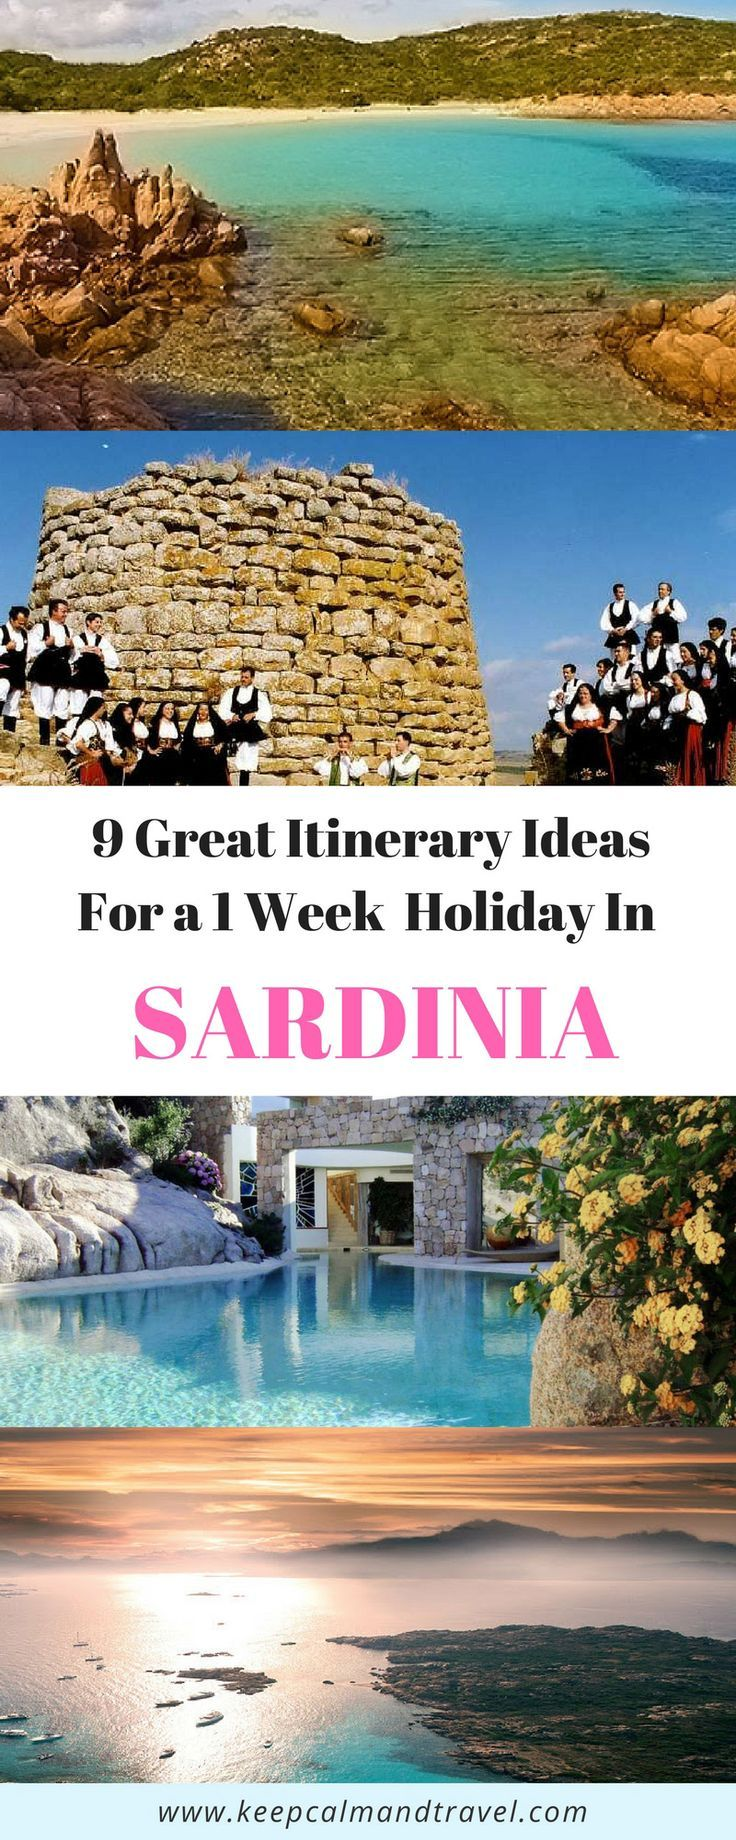 Nine Super detailed Sardinia Itineraries: Ready to go with maps, places you can't miss, how to get there, where to eat and much more!  #Sardinia #sardegna #italy #europe #vacation #holidays #travelitinerary #traveltips #travelideas #beaches #beach #sea #snorkeling